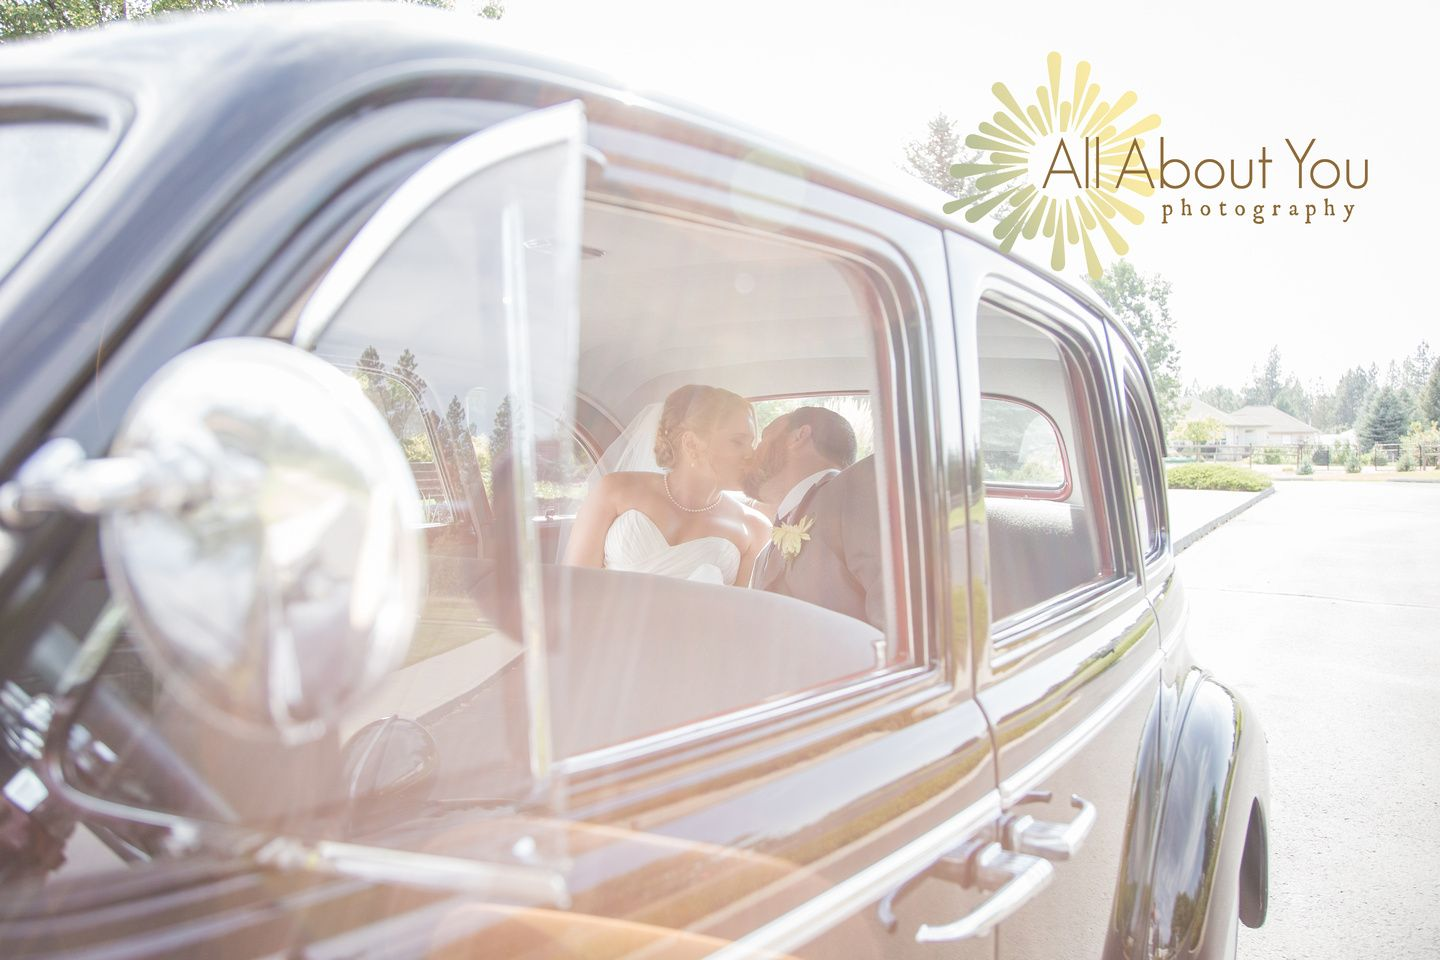 All About You Photography, Spokane photographer, bride and groom in ...